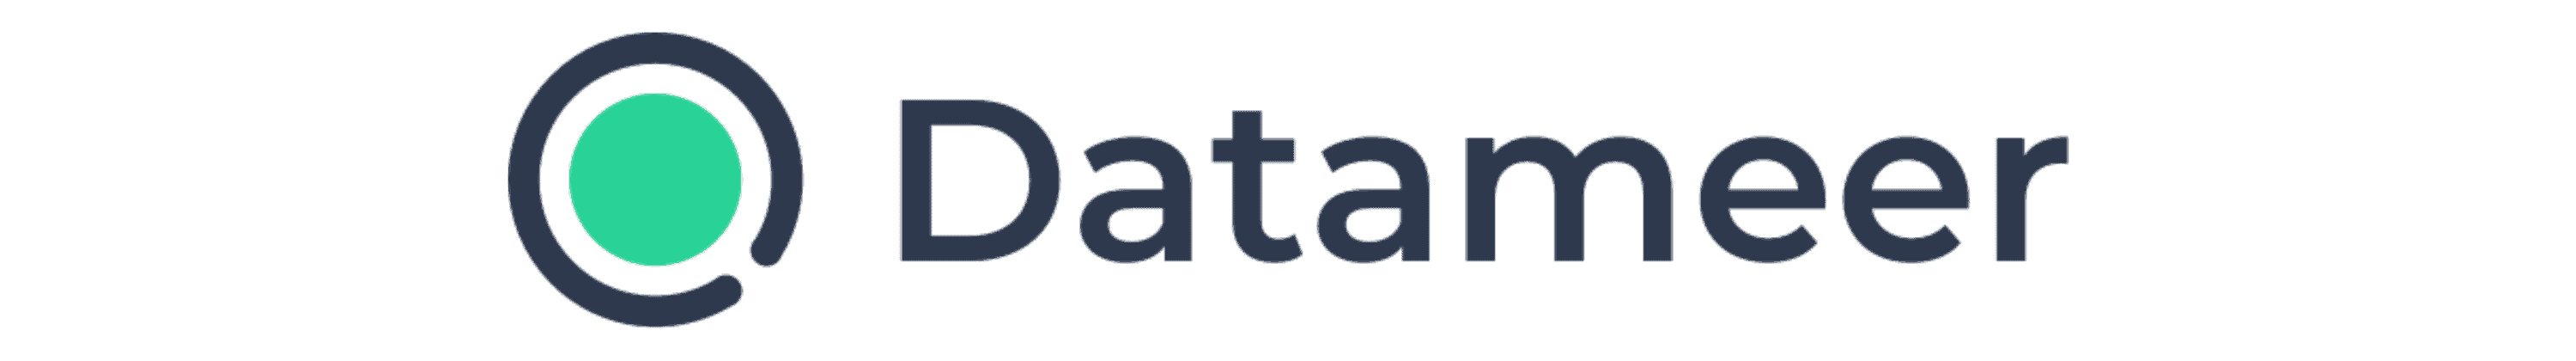 Datameer logo for banners